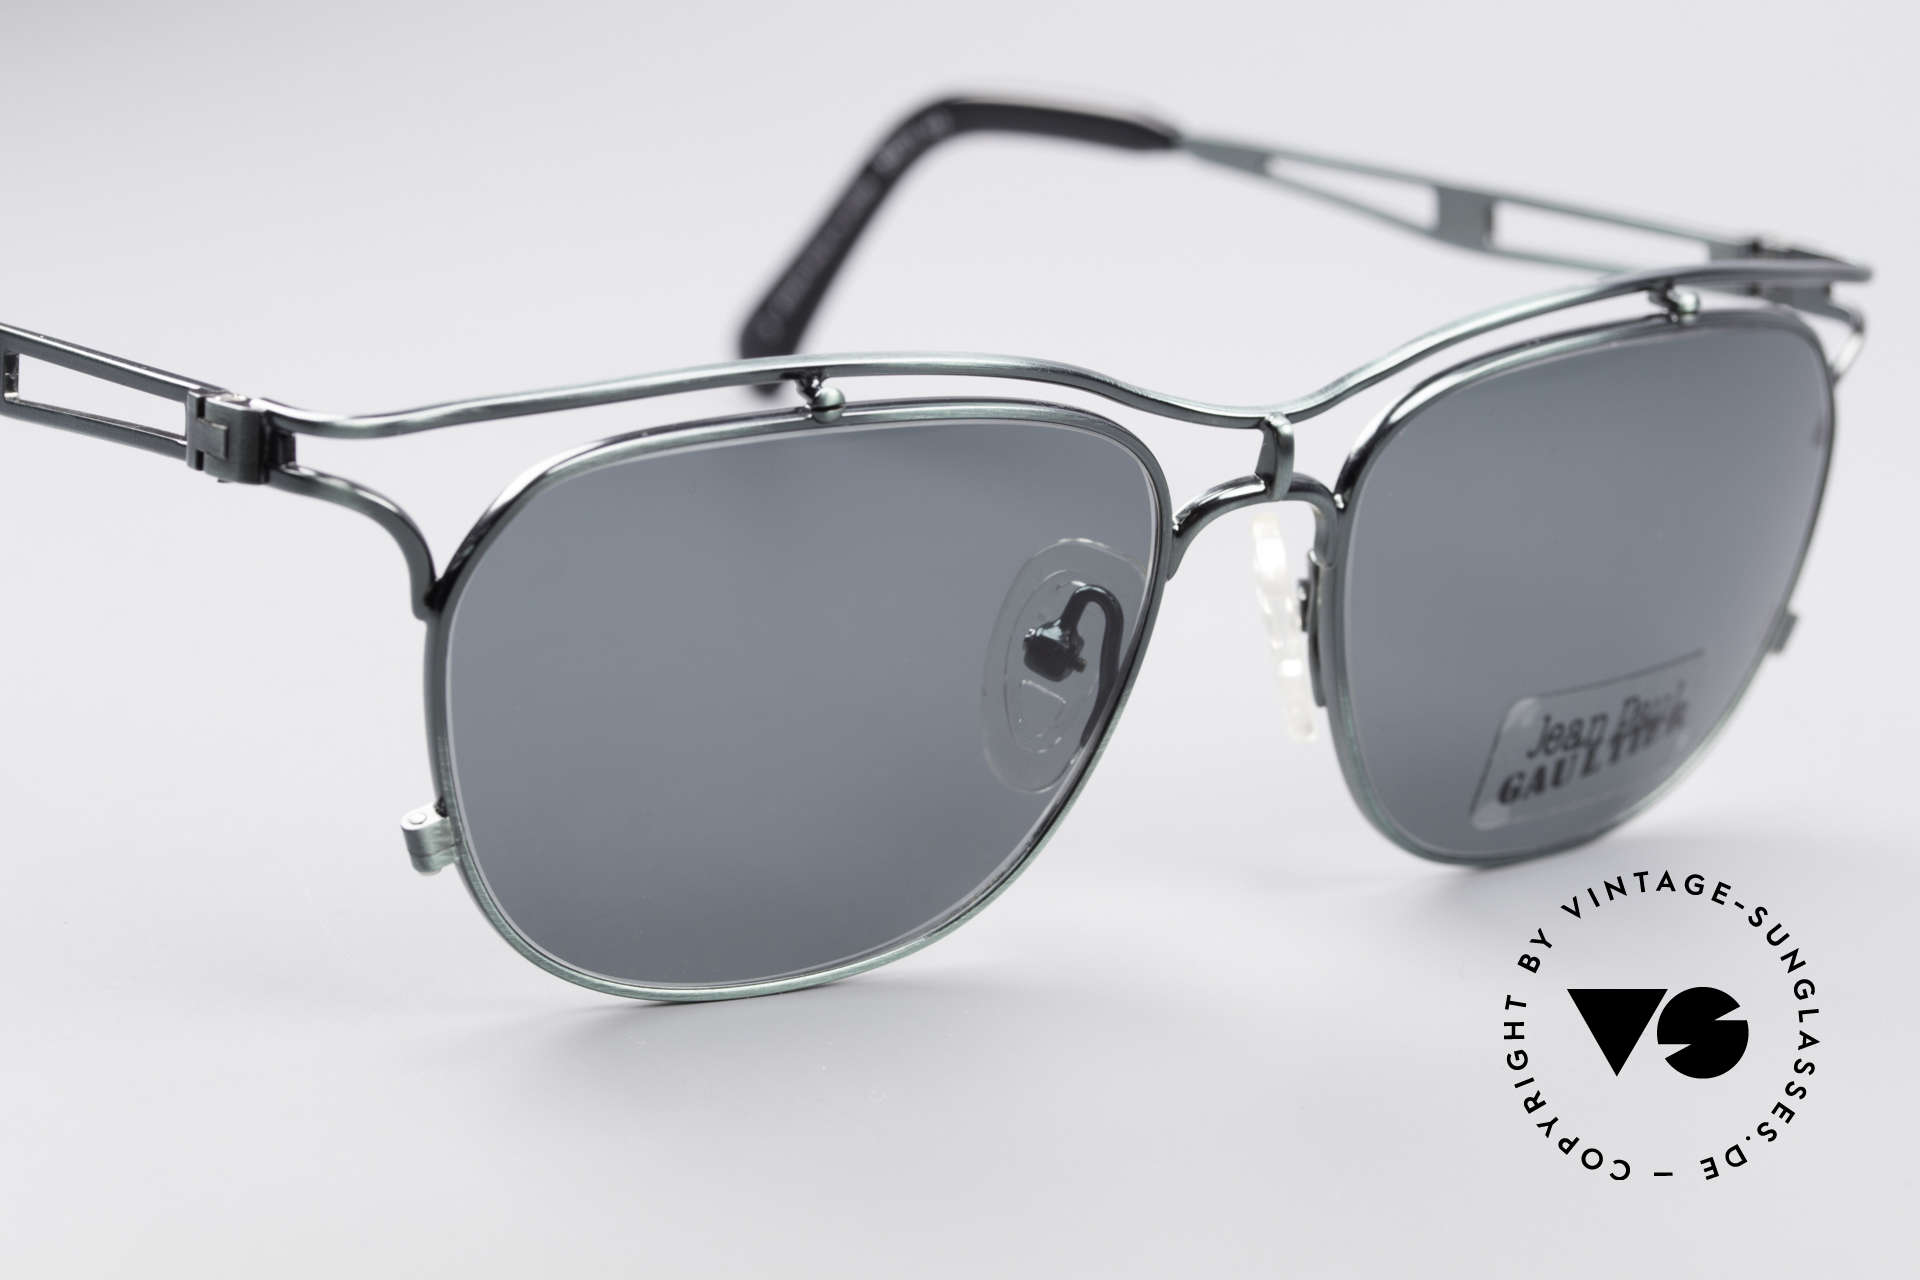 Jean Paul Gaultier 55-2178 Top Quality Vintage Frame, NO RETRO SHADES, but a rare old 1990's ORIGINAL, Made for Men and Women